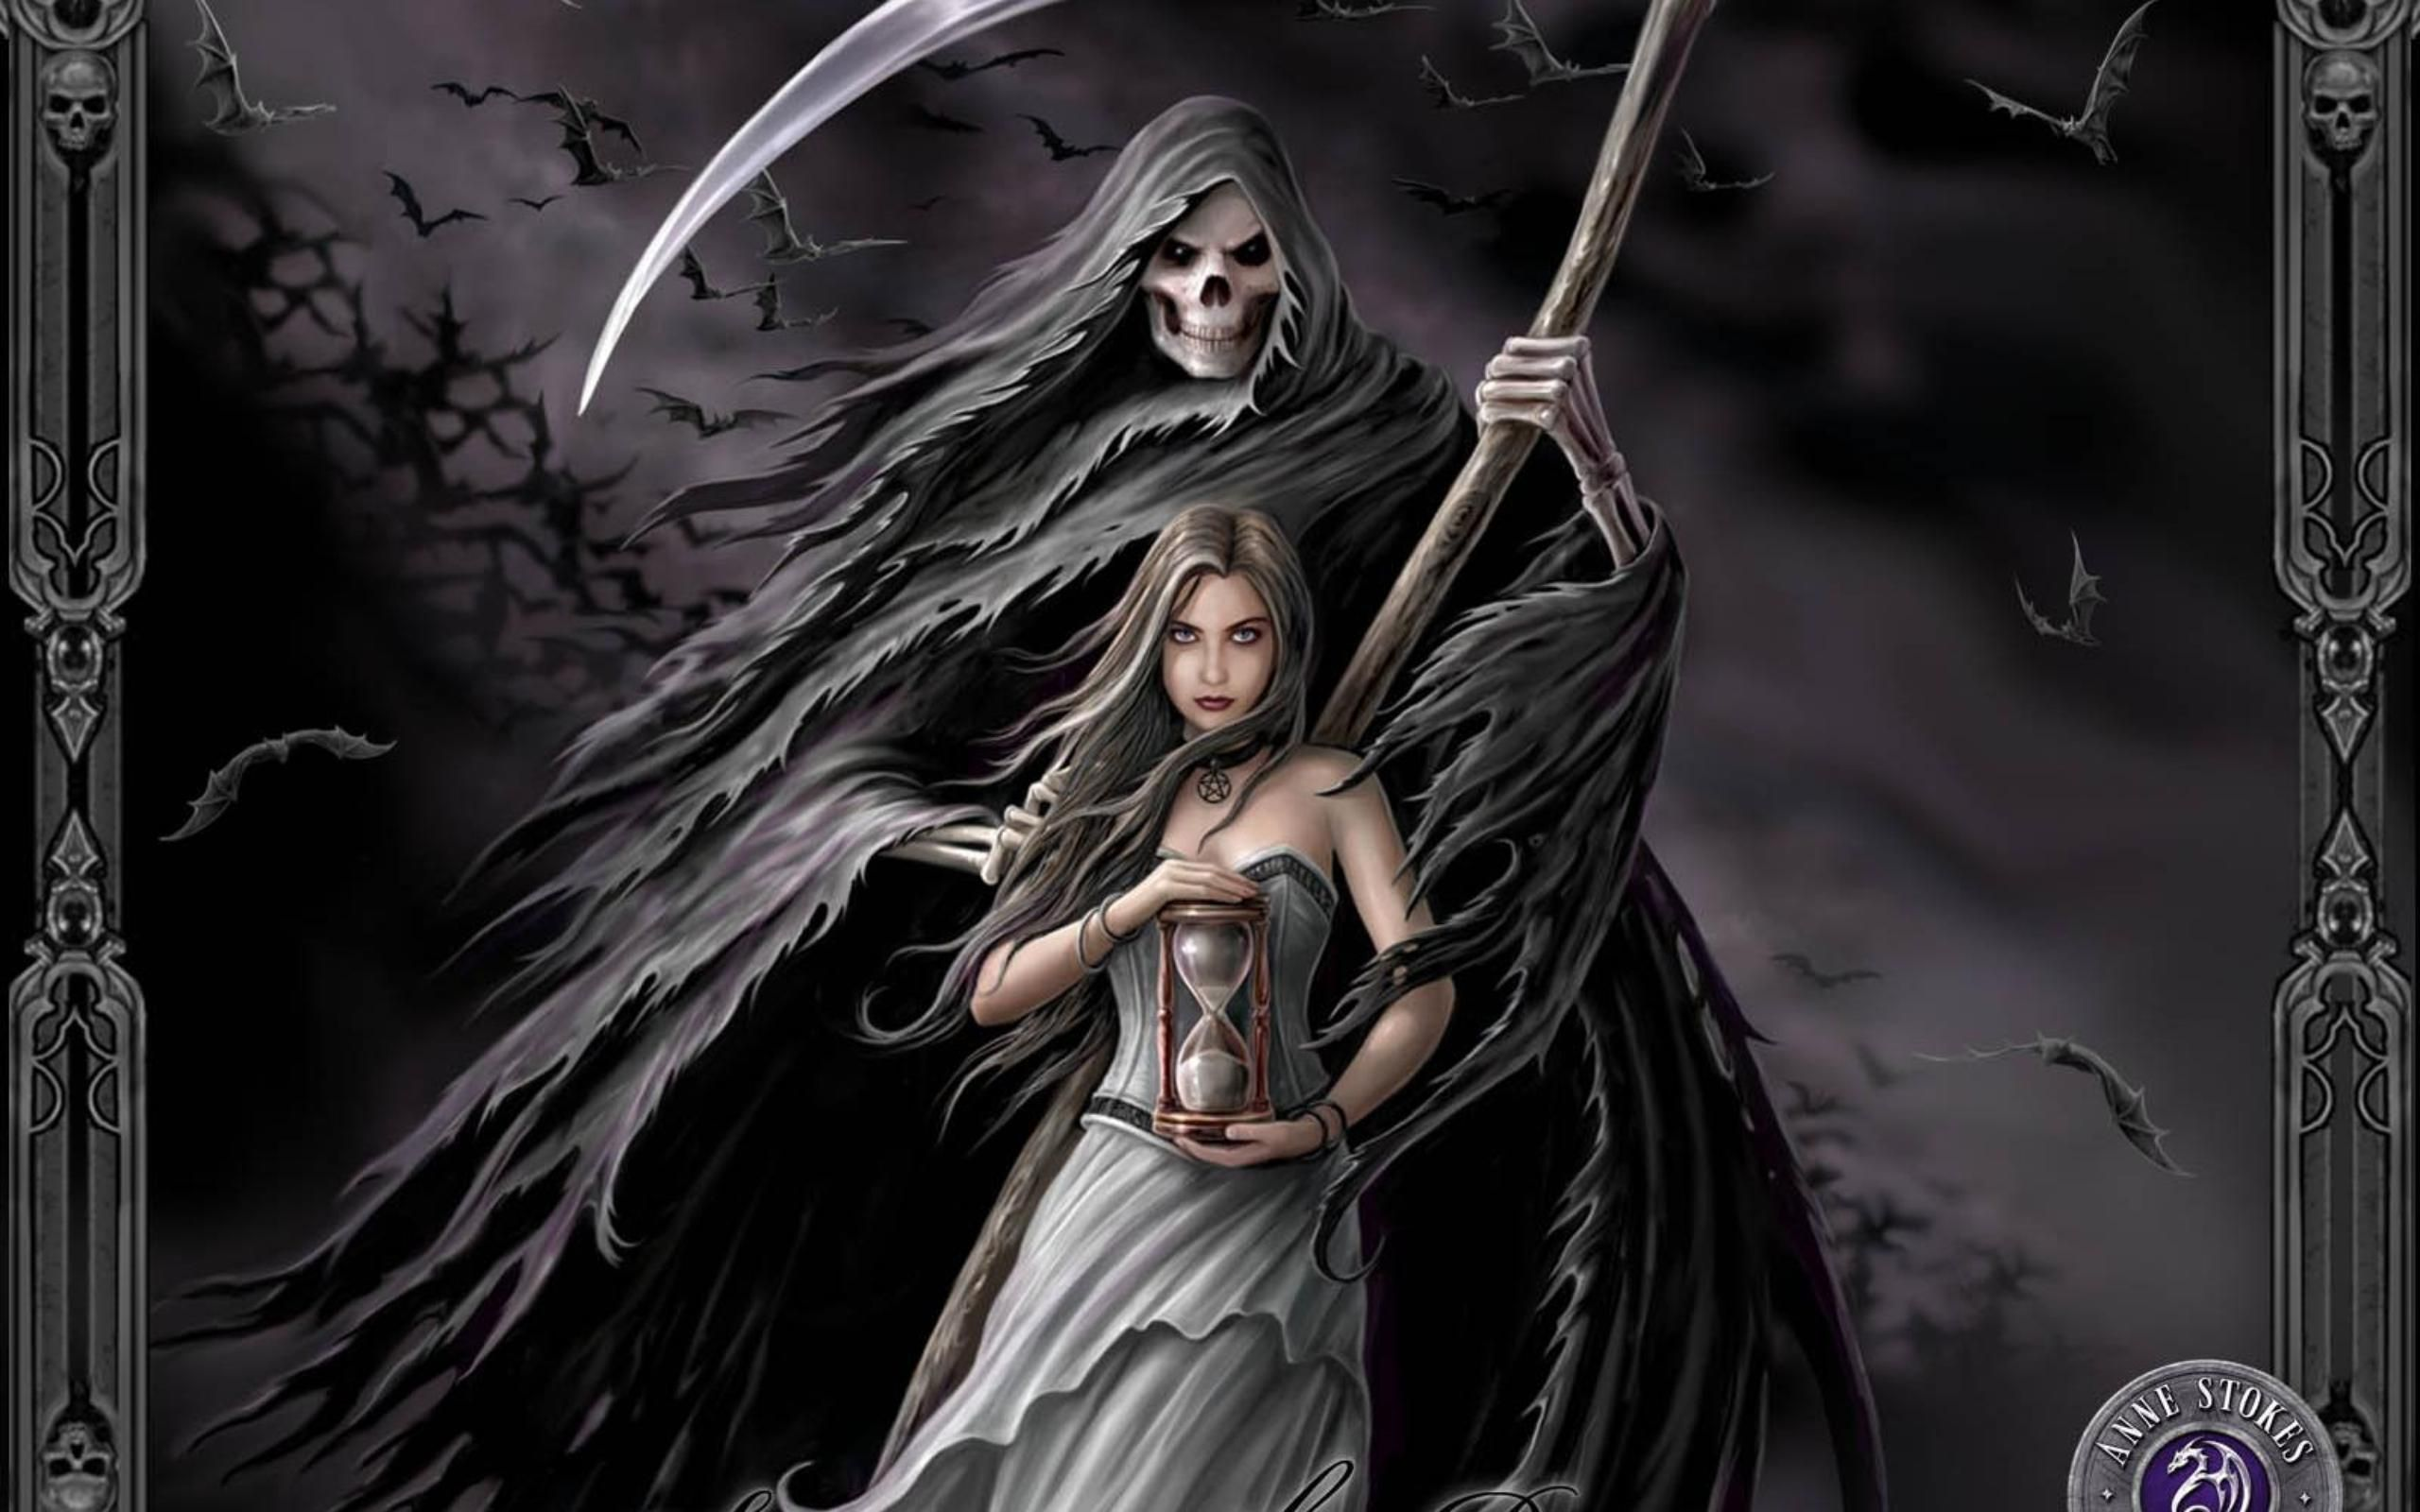 Grim Reaper With A Young Fantasy Girl Jpg 2560 1600 堕天使 ファンタジーアート イラスト